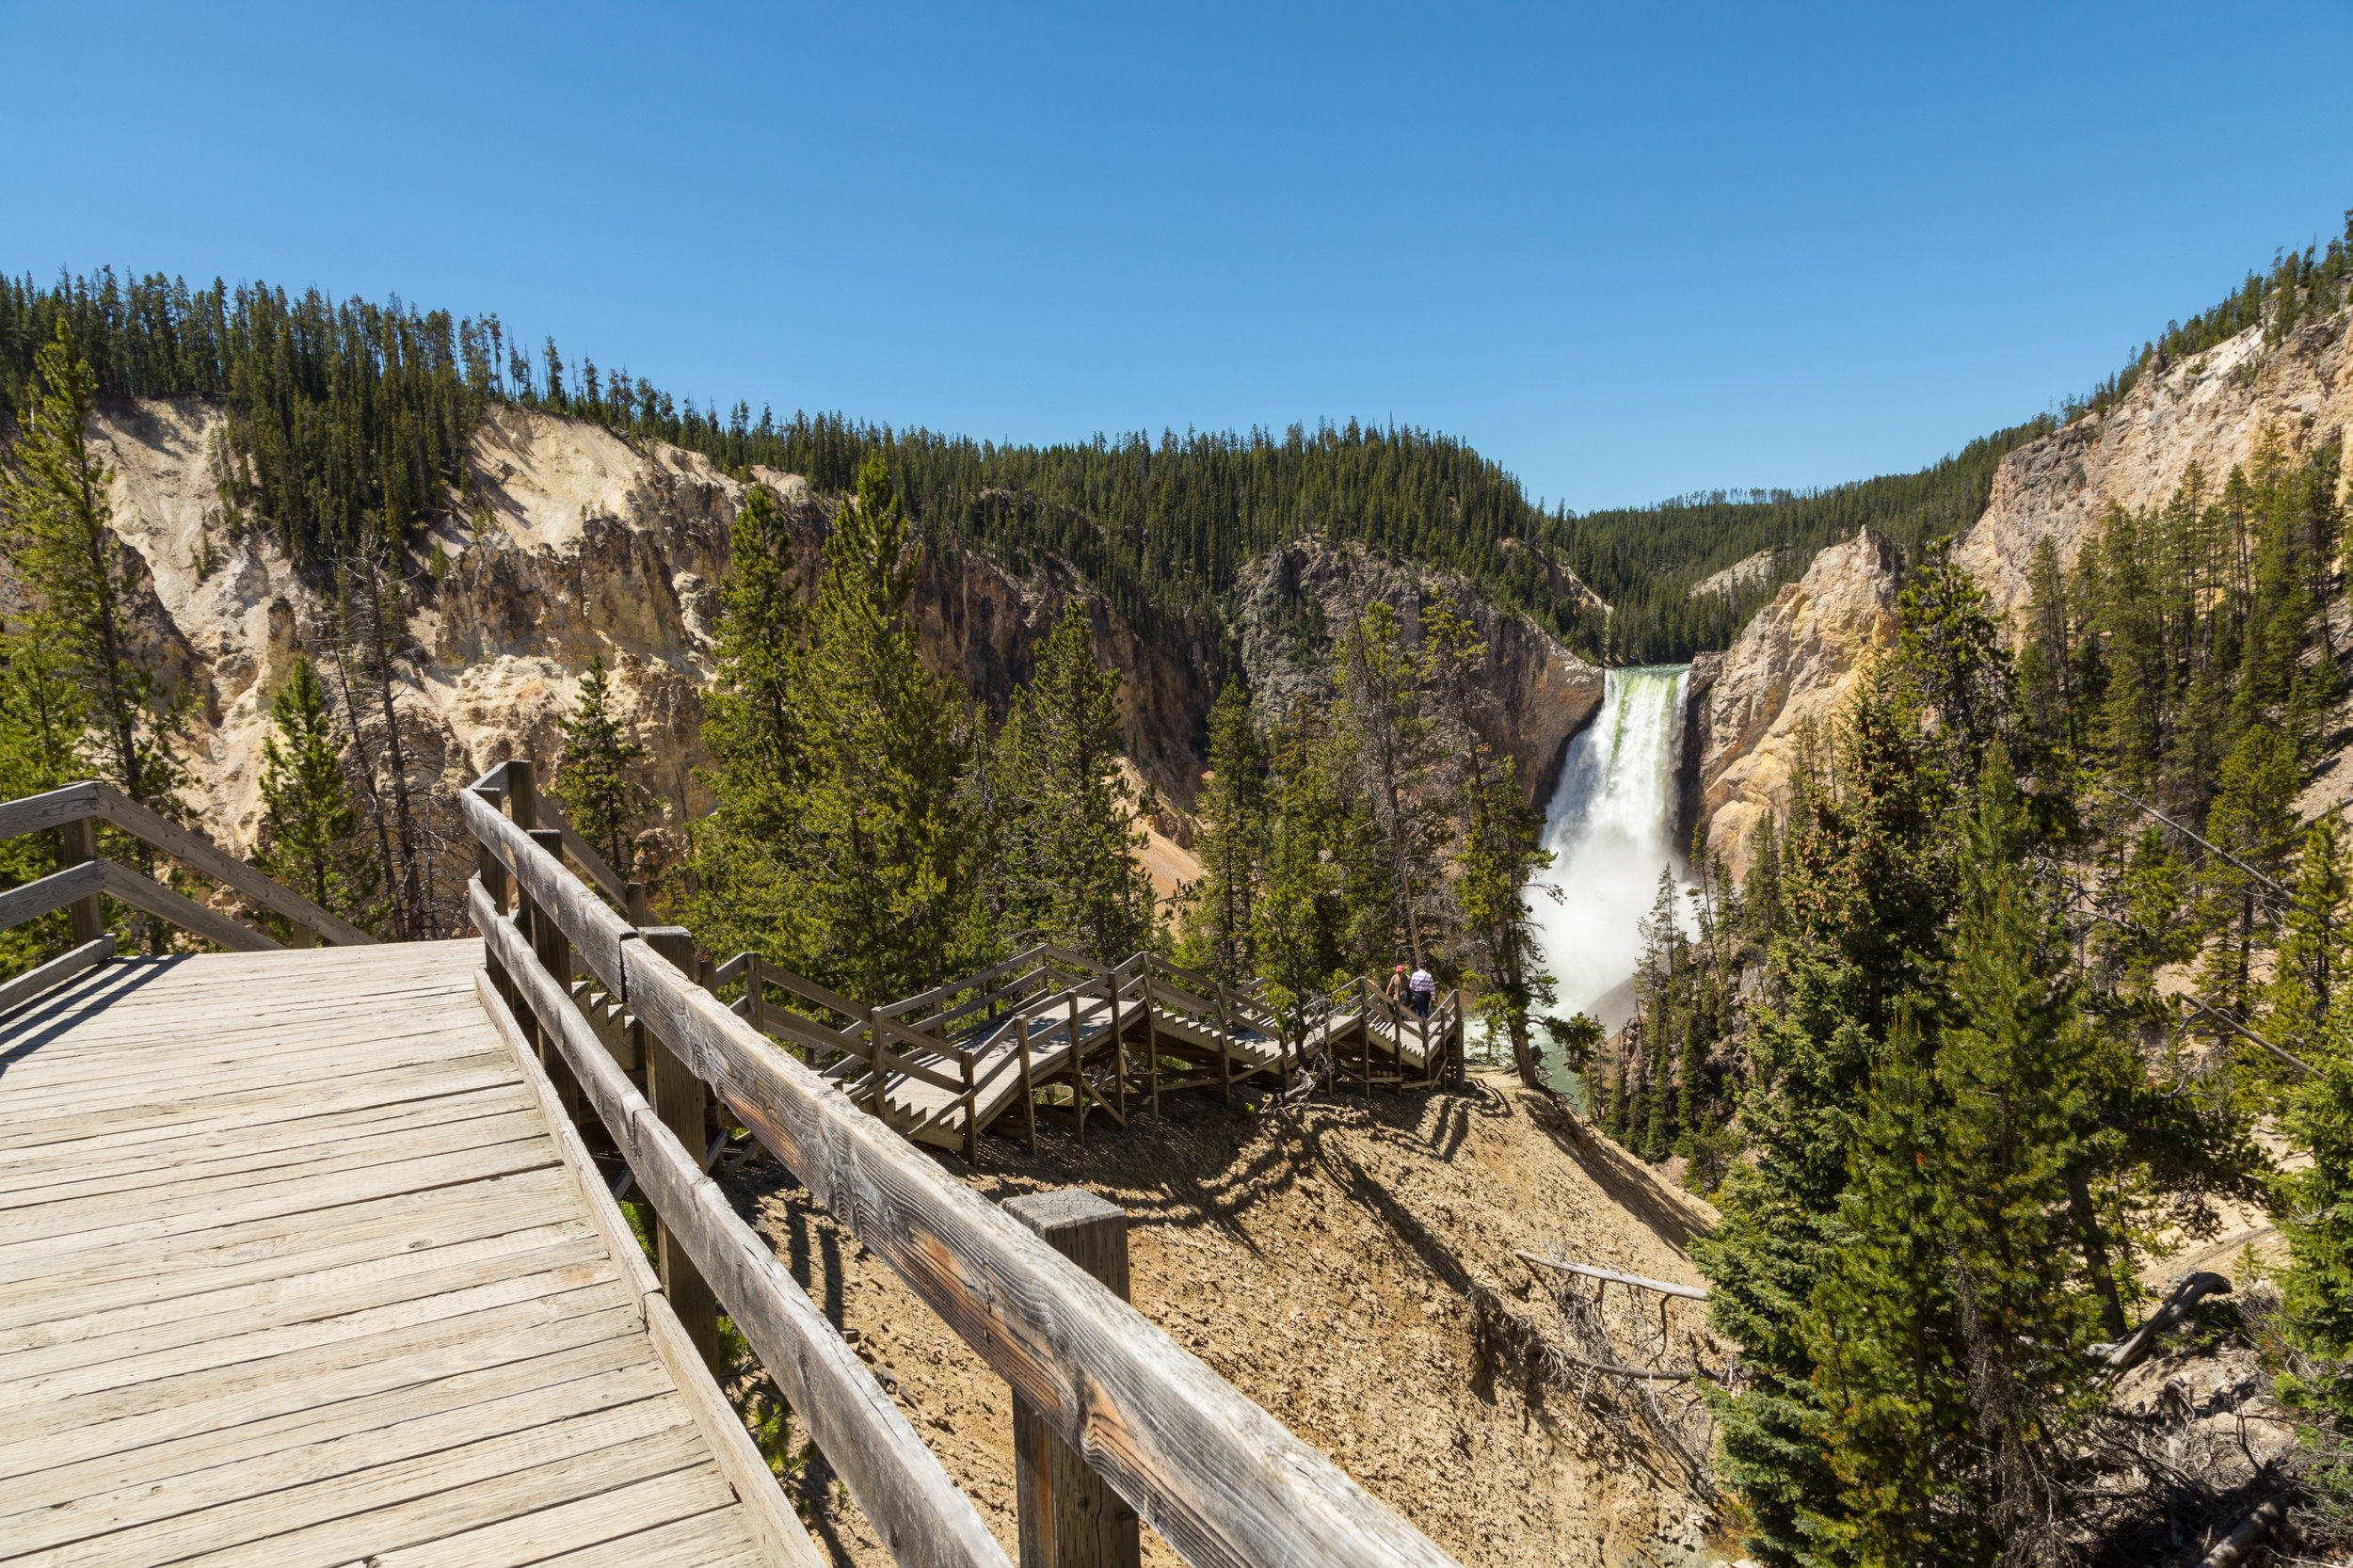 Artist Point, Yellowstone National Park, Image # 7298